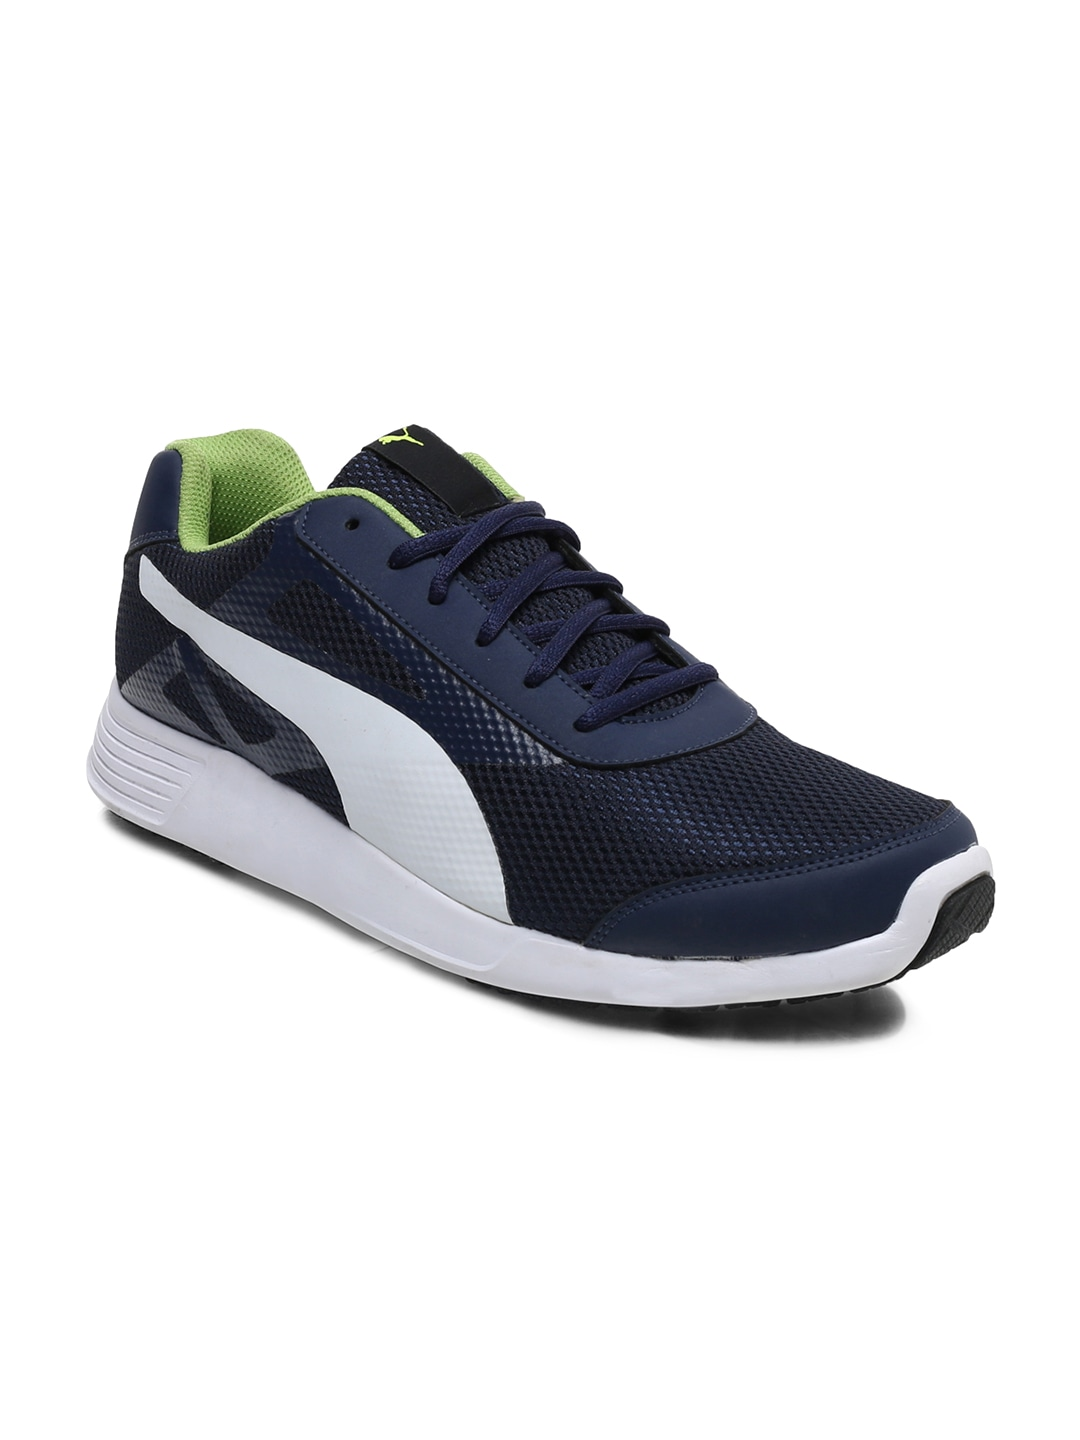 Puma Boy S Leather Running Shoes